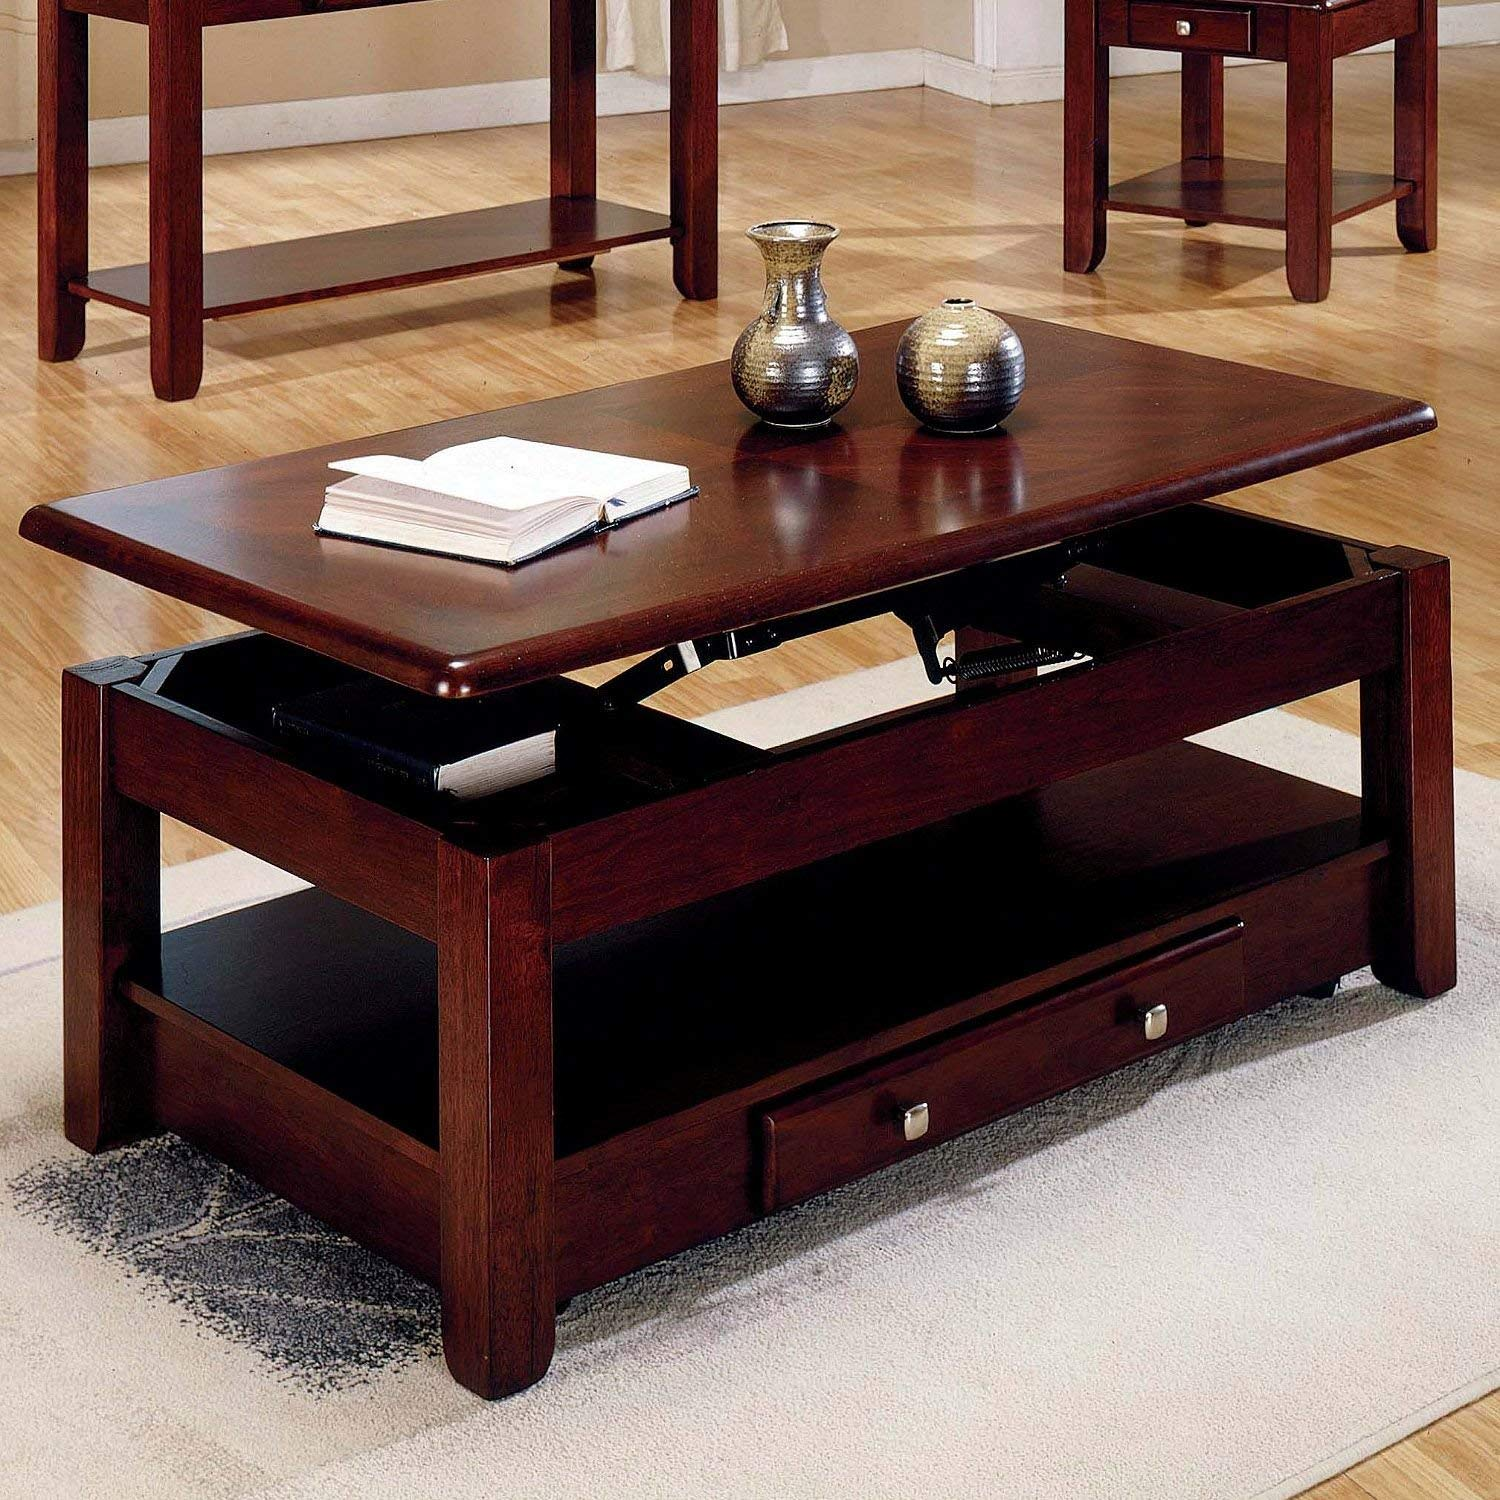 Amazon com lift top coffee table in cherry finish with storage drawers and bottom shelf by lift top table kitchen dining